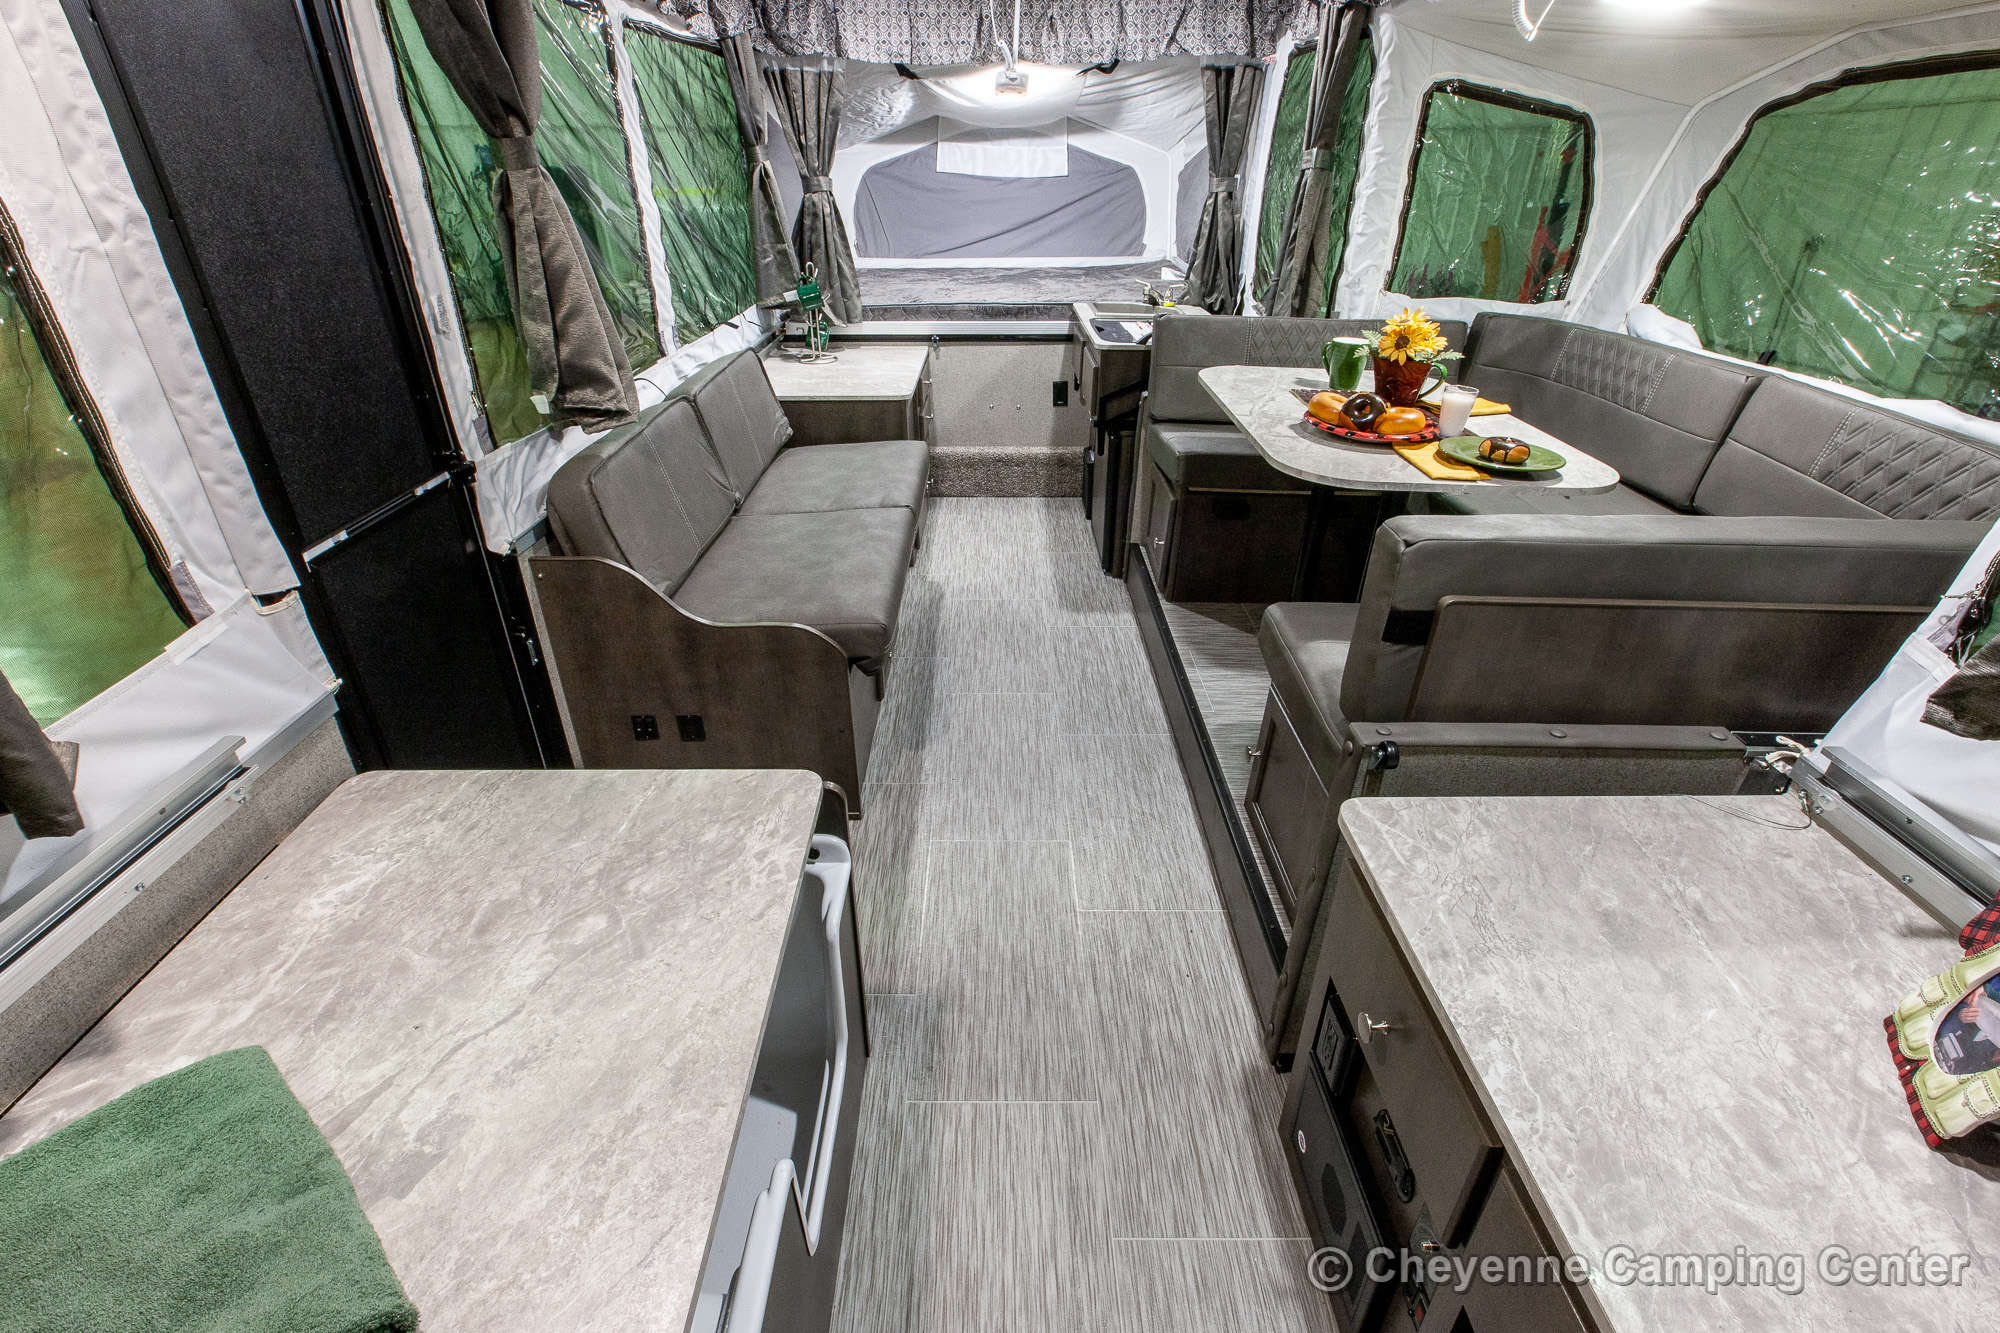 2021 Forest River Flagstaff MAC 627M Folding Camper Interior Image